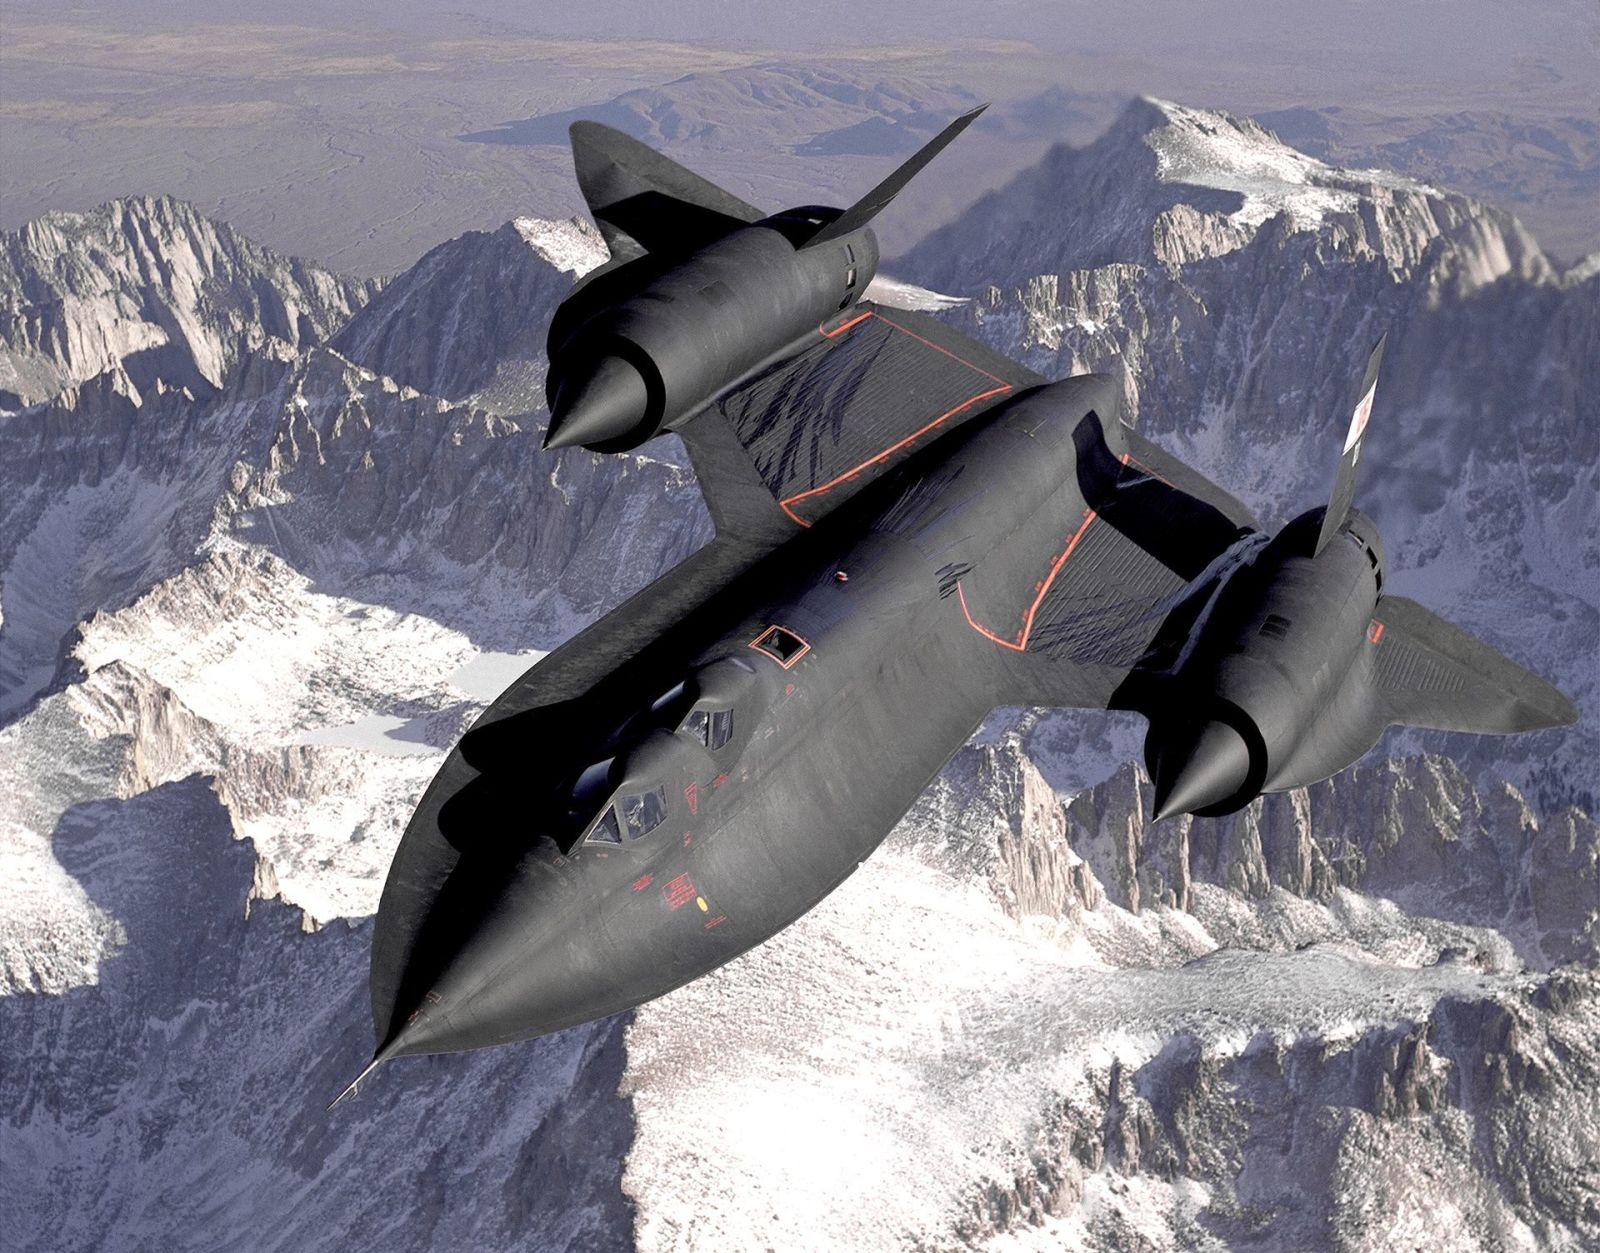 What Made the SR-71 Blackbird Such a Badass Plane